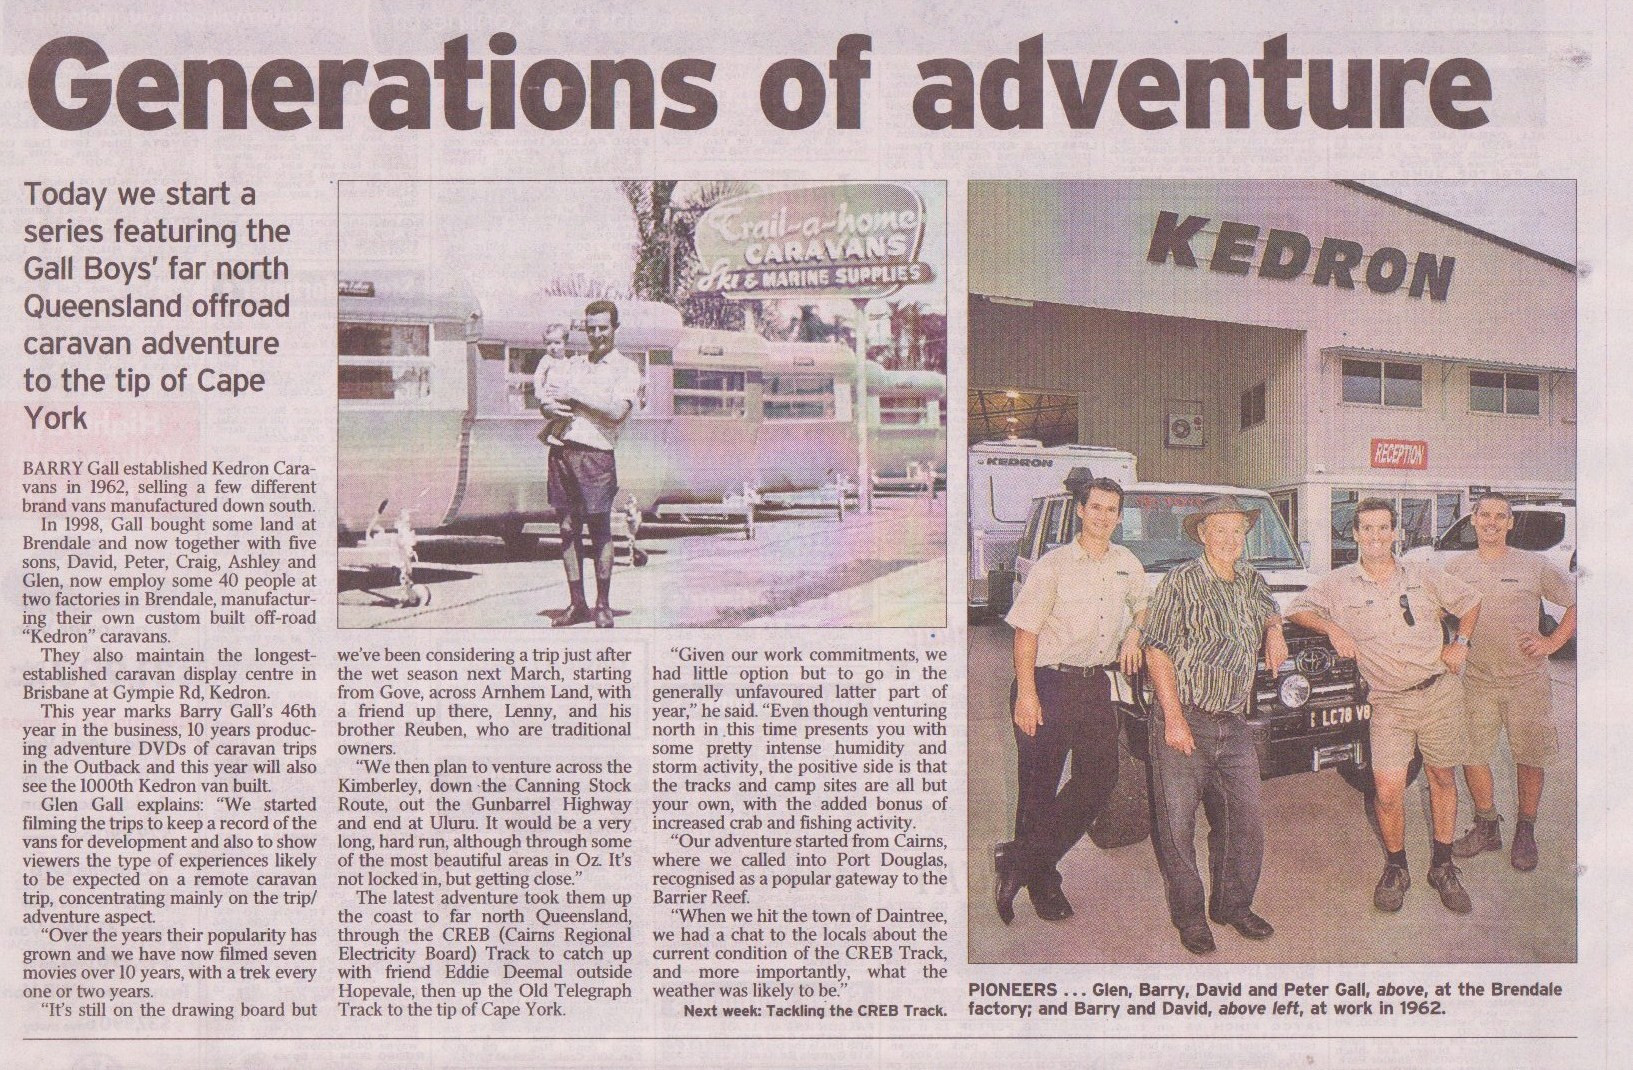 Courier Mail - Generations of adventure - Gall Boys KEDRON Caravans